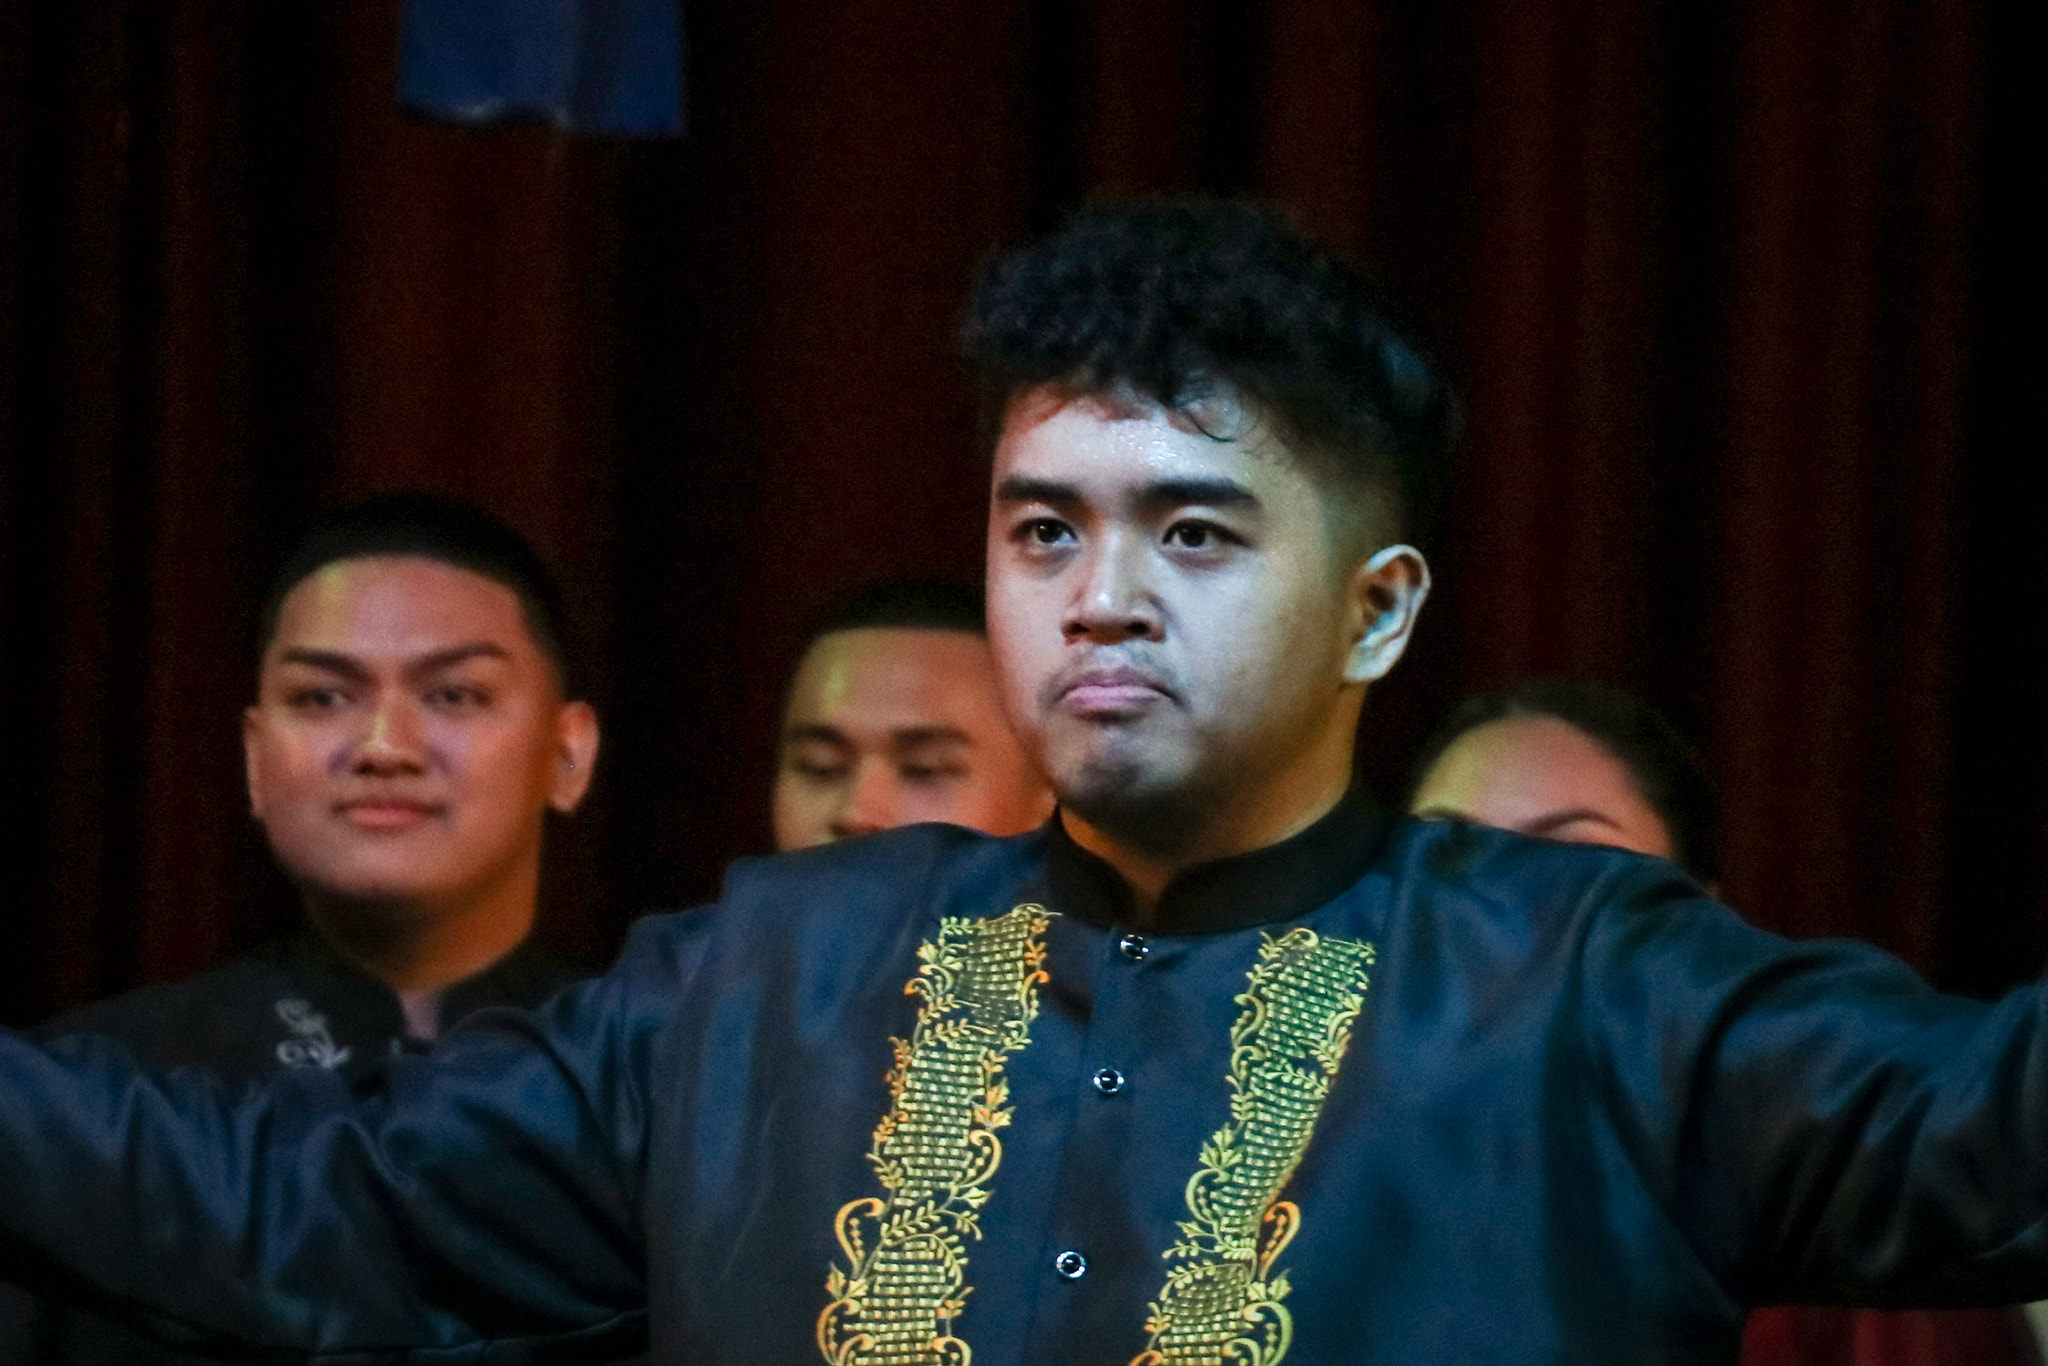 UST Singers' Mark Agpasa judged Composition Winner of 2019